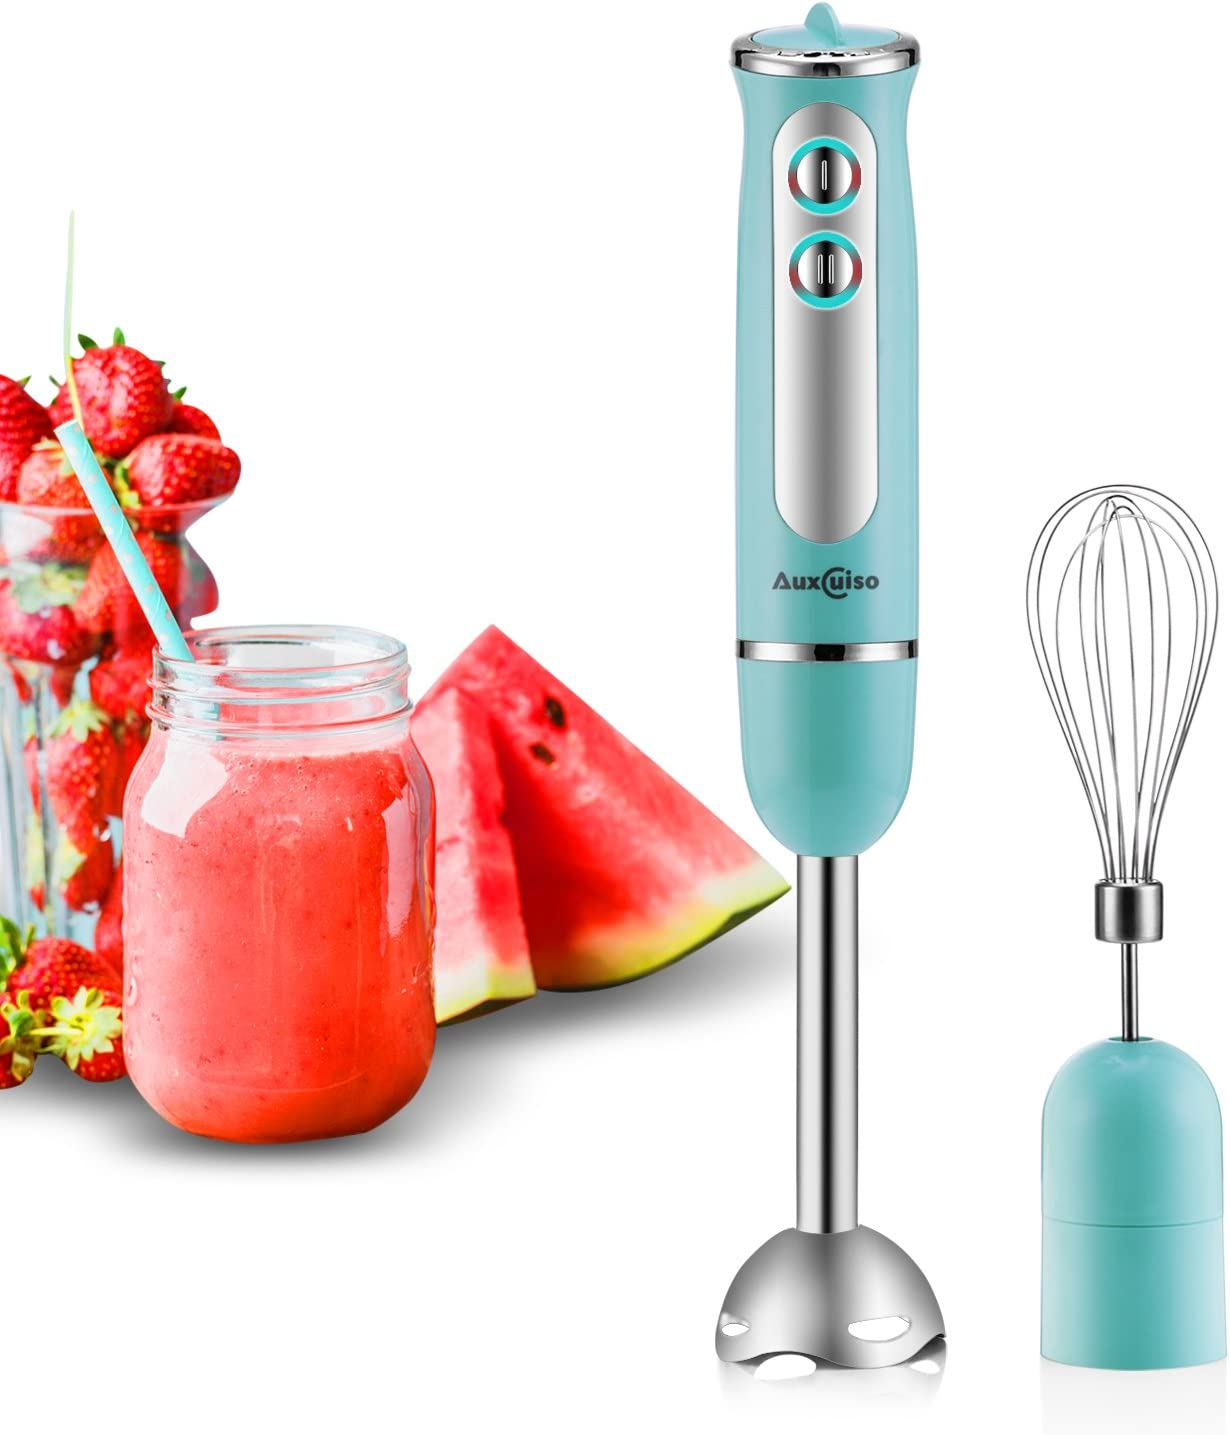 Auxcuiso Stick Immersion Hand Blender Powerful 500 Watts 8 Speeds 2 in 1 Whisk Attachment Included|Emersion Blender|Mixer